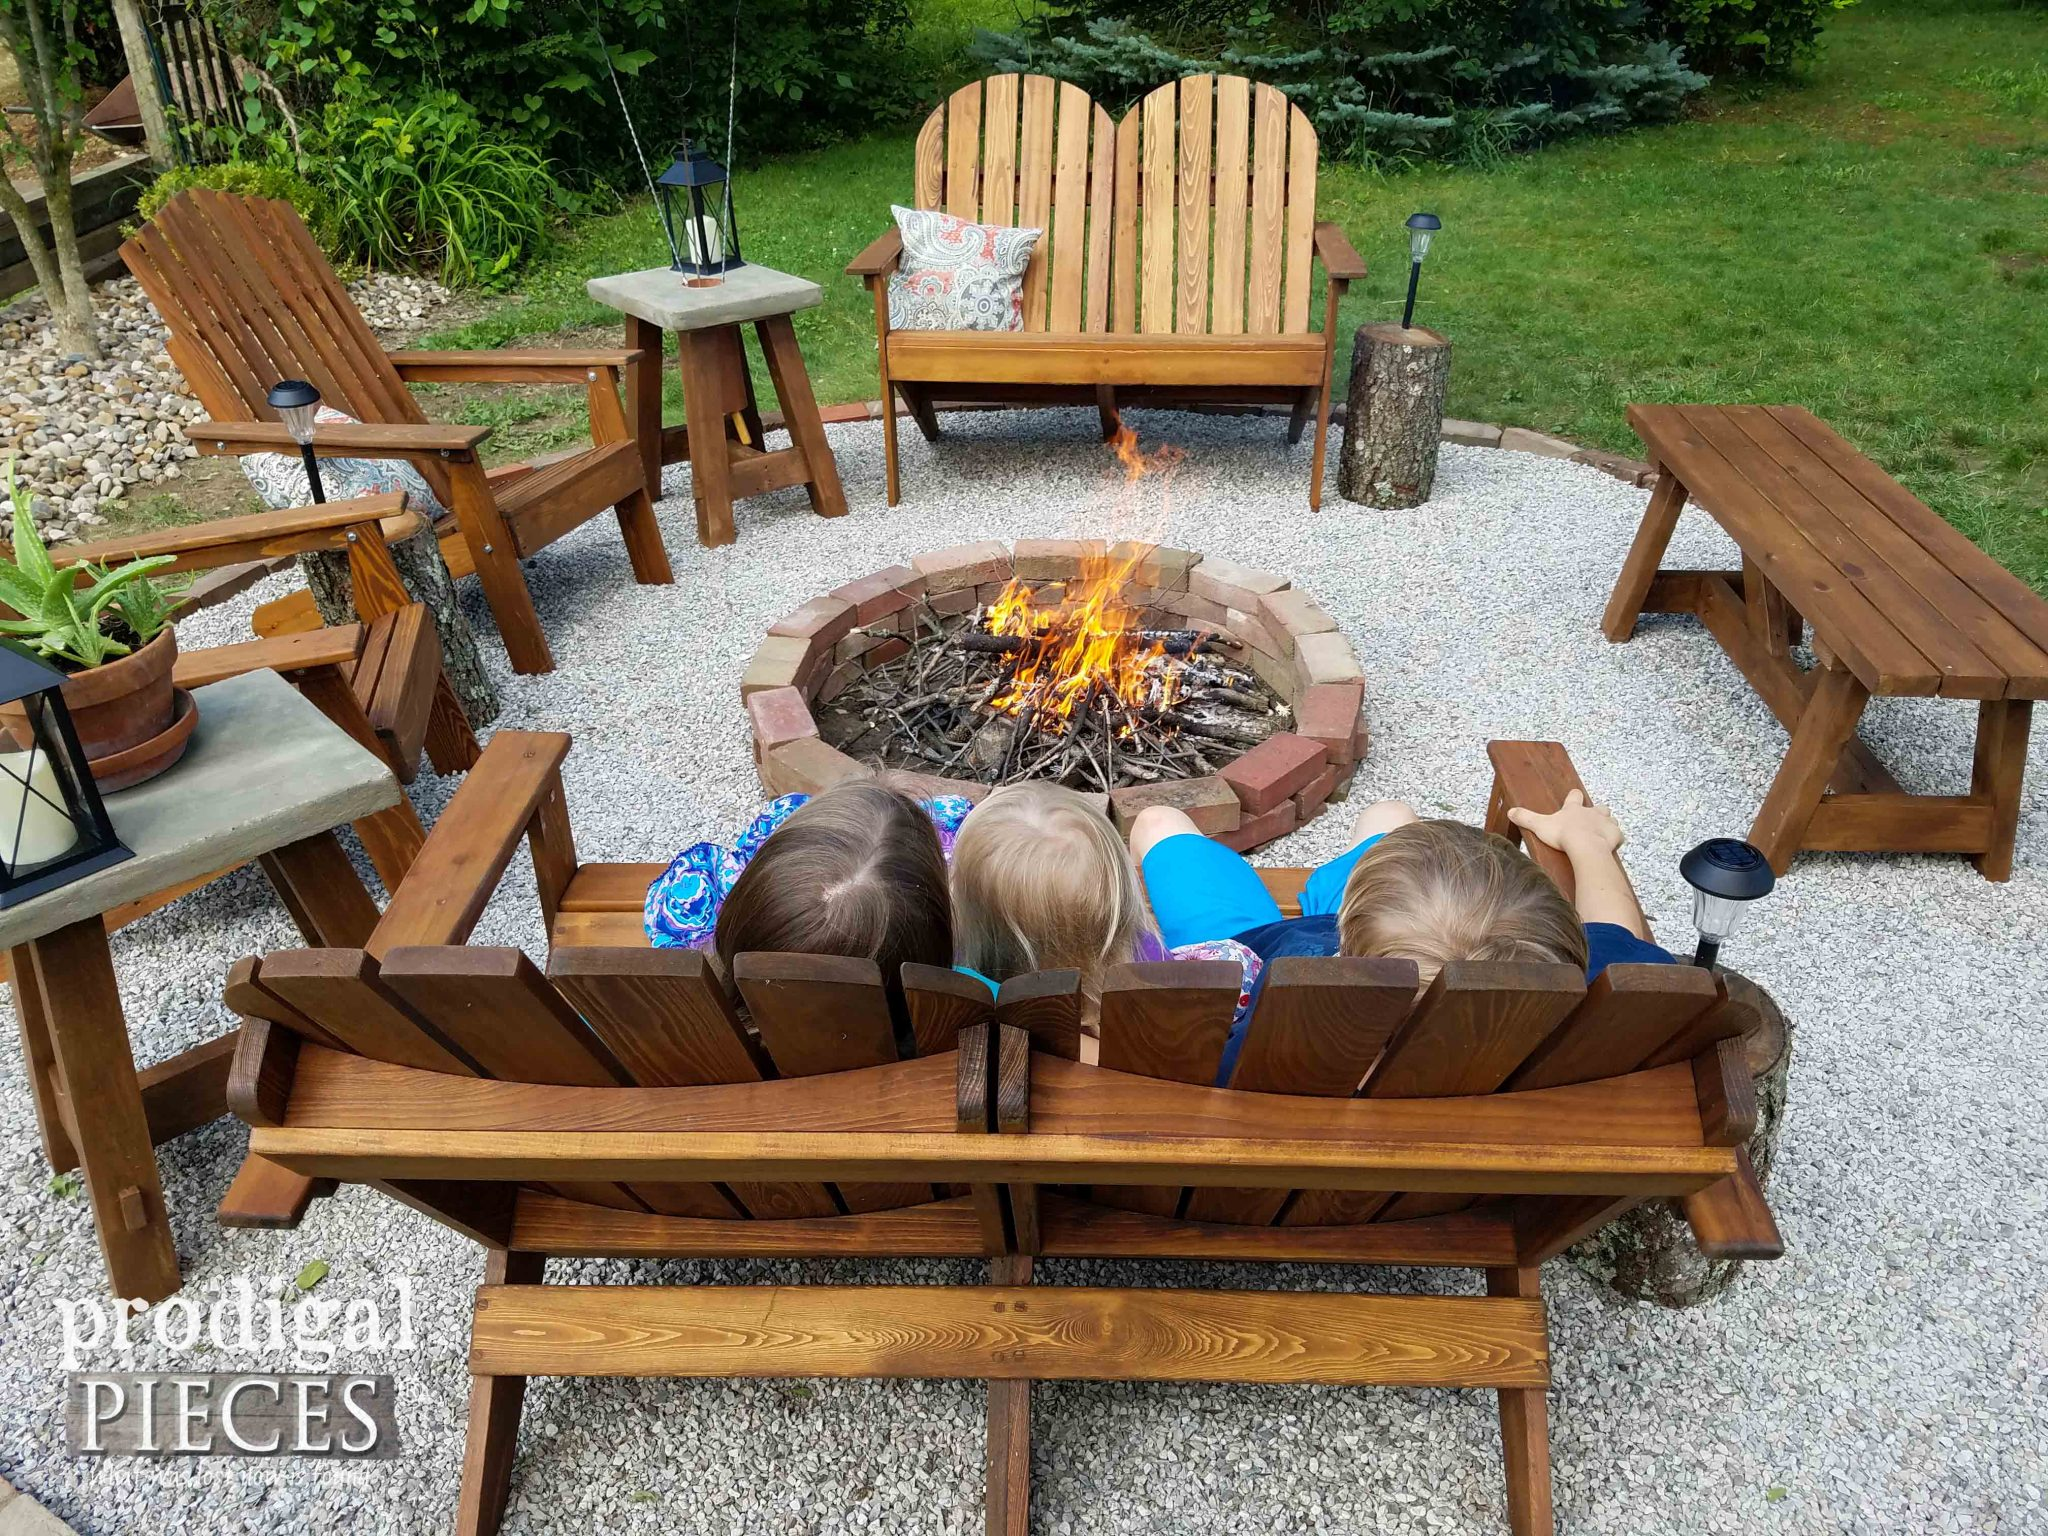 Kids Relaxing in Backyard Fire Pit | prodigalpieces.com